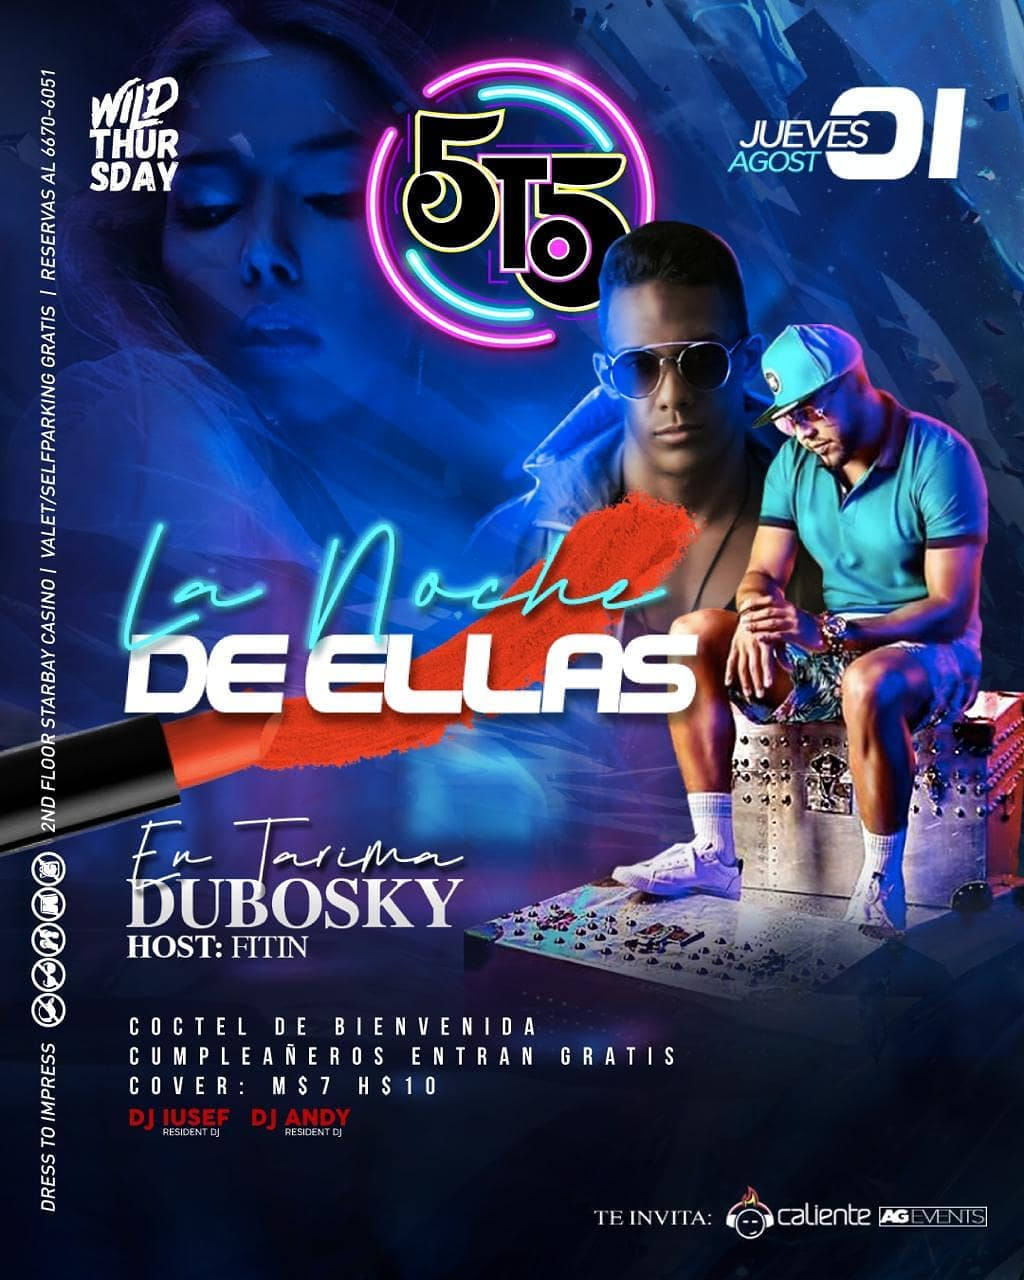 Photo of 5to5 presenta 'La Noche de Ellas' con Dubosky en tarima